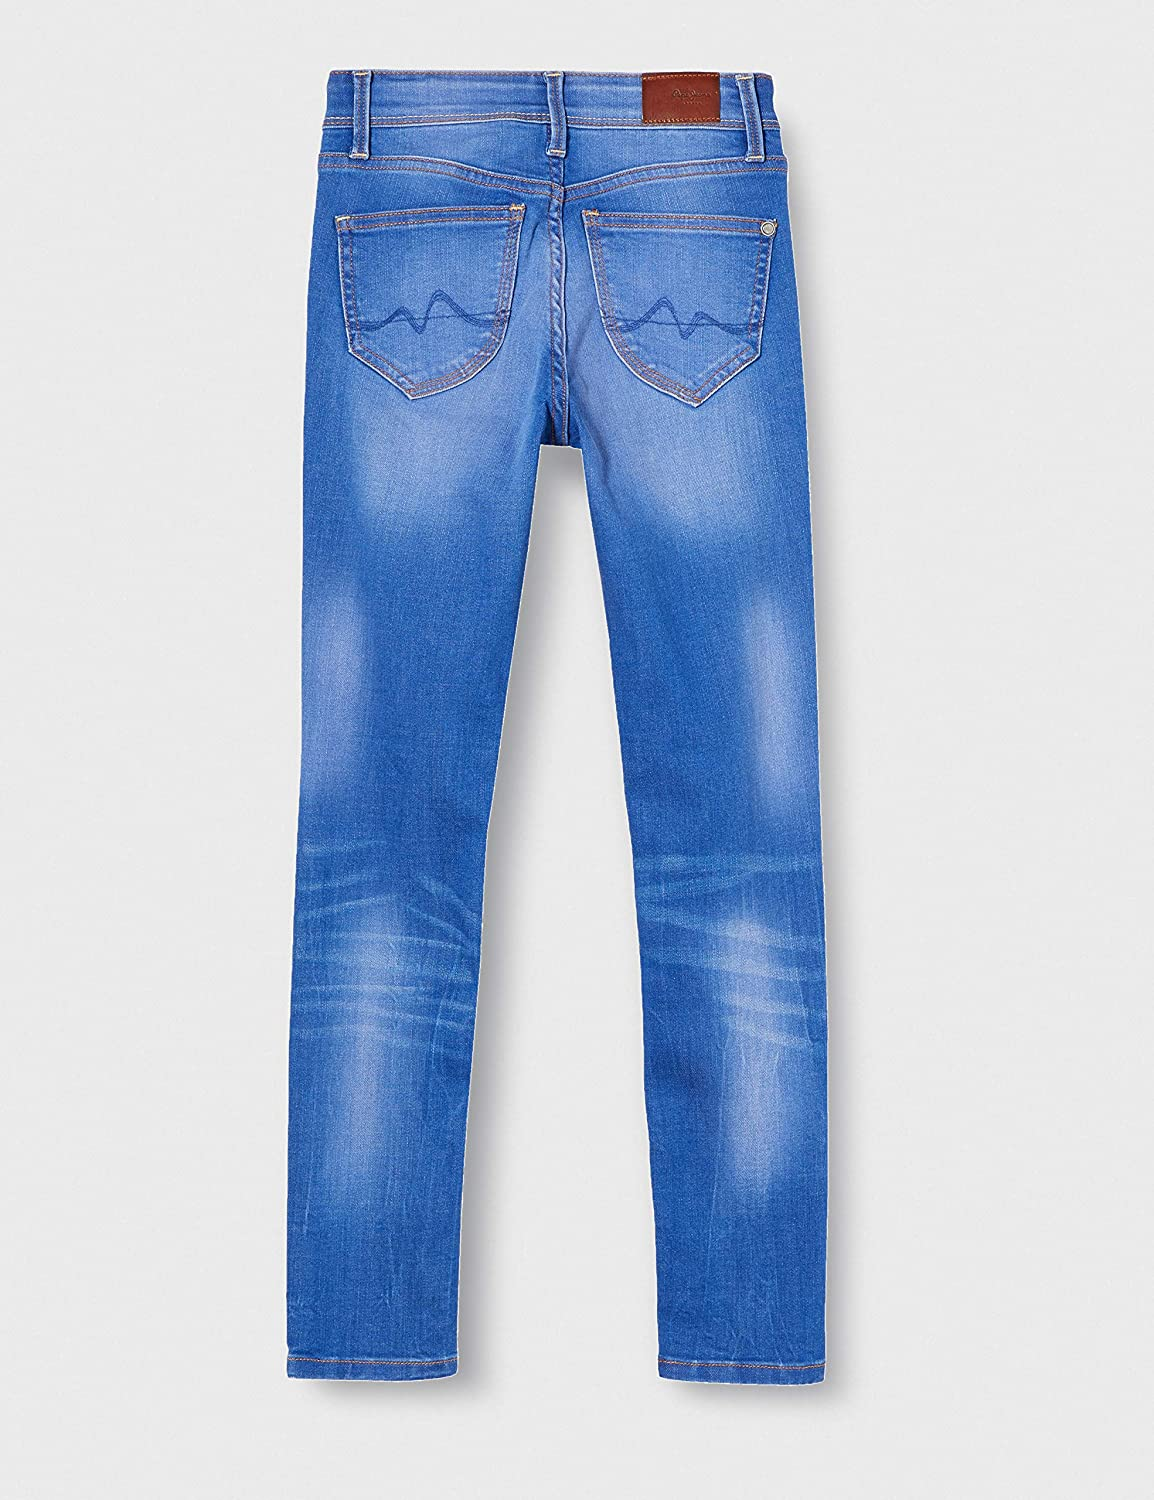 Pepe Jeans Girls Pixlette High Jeans